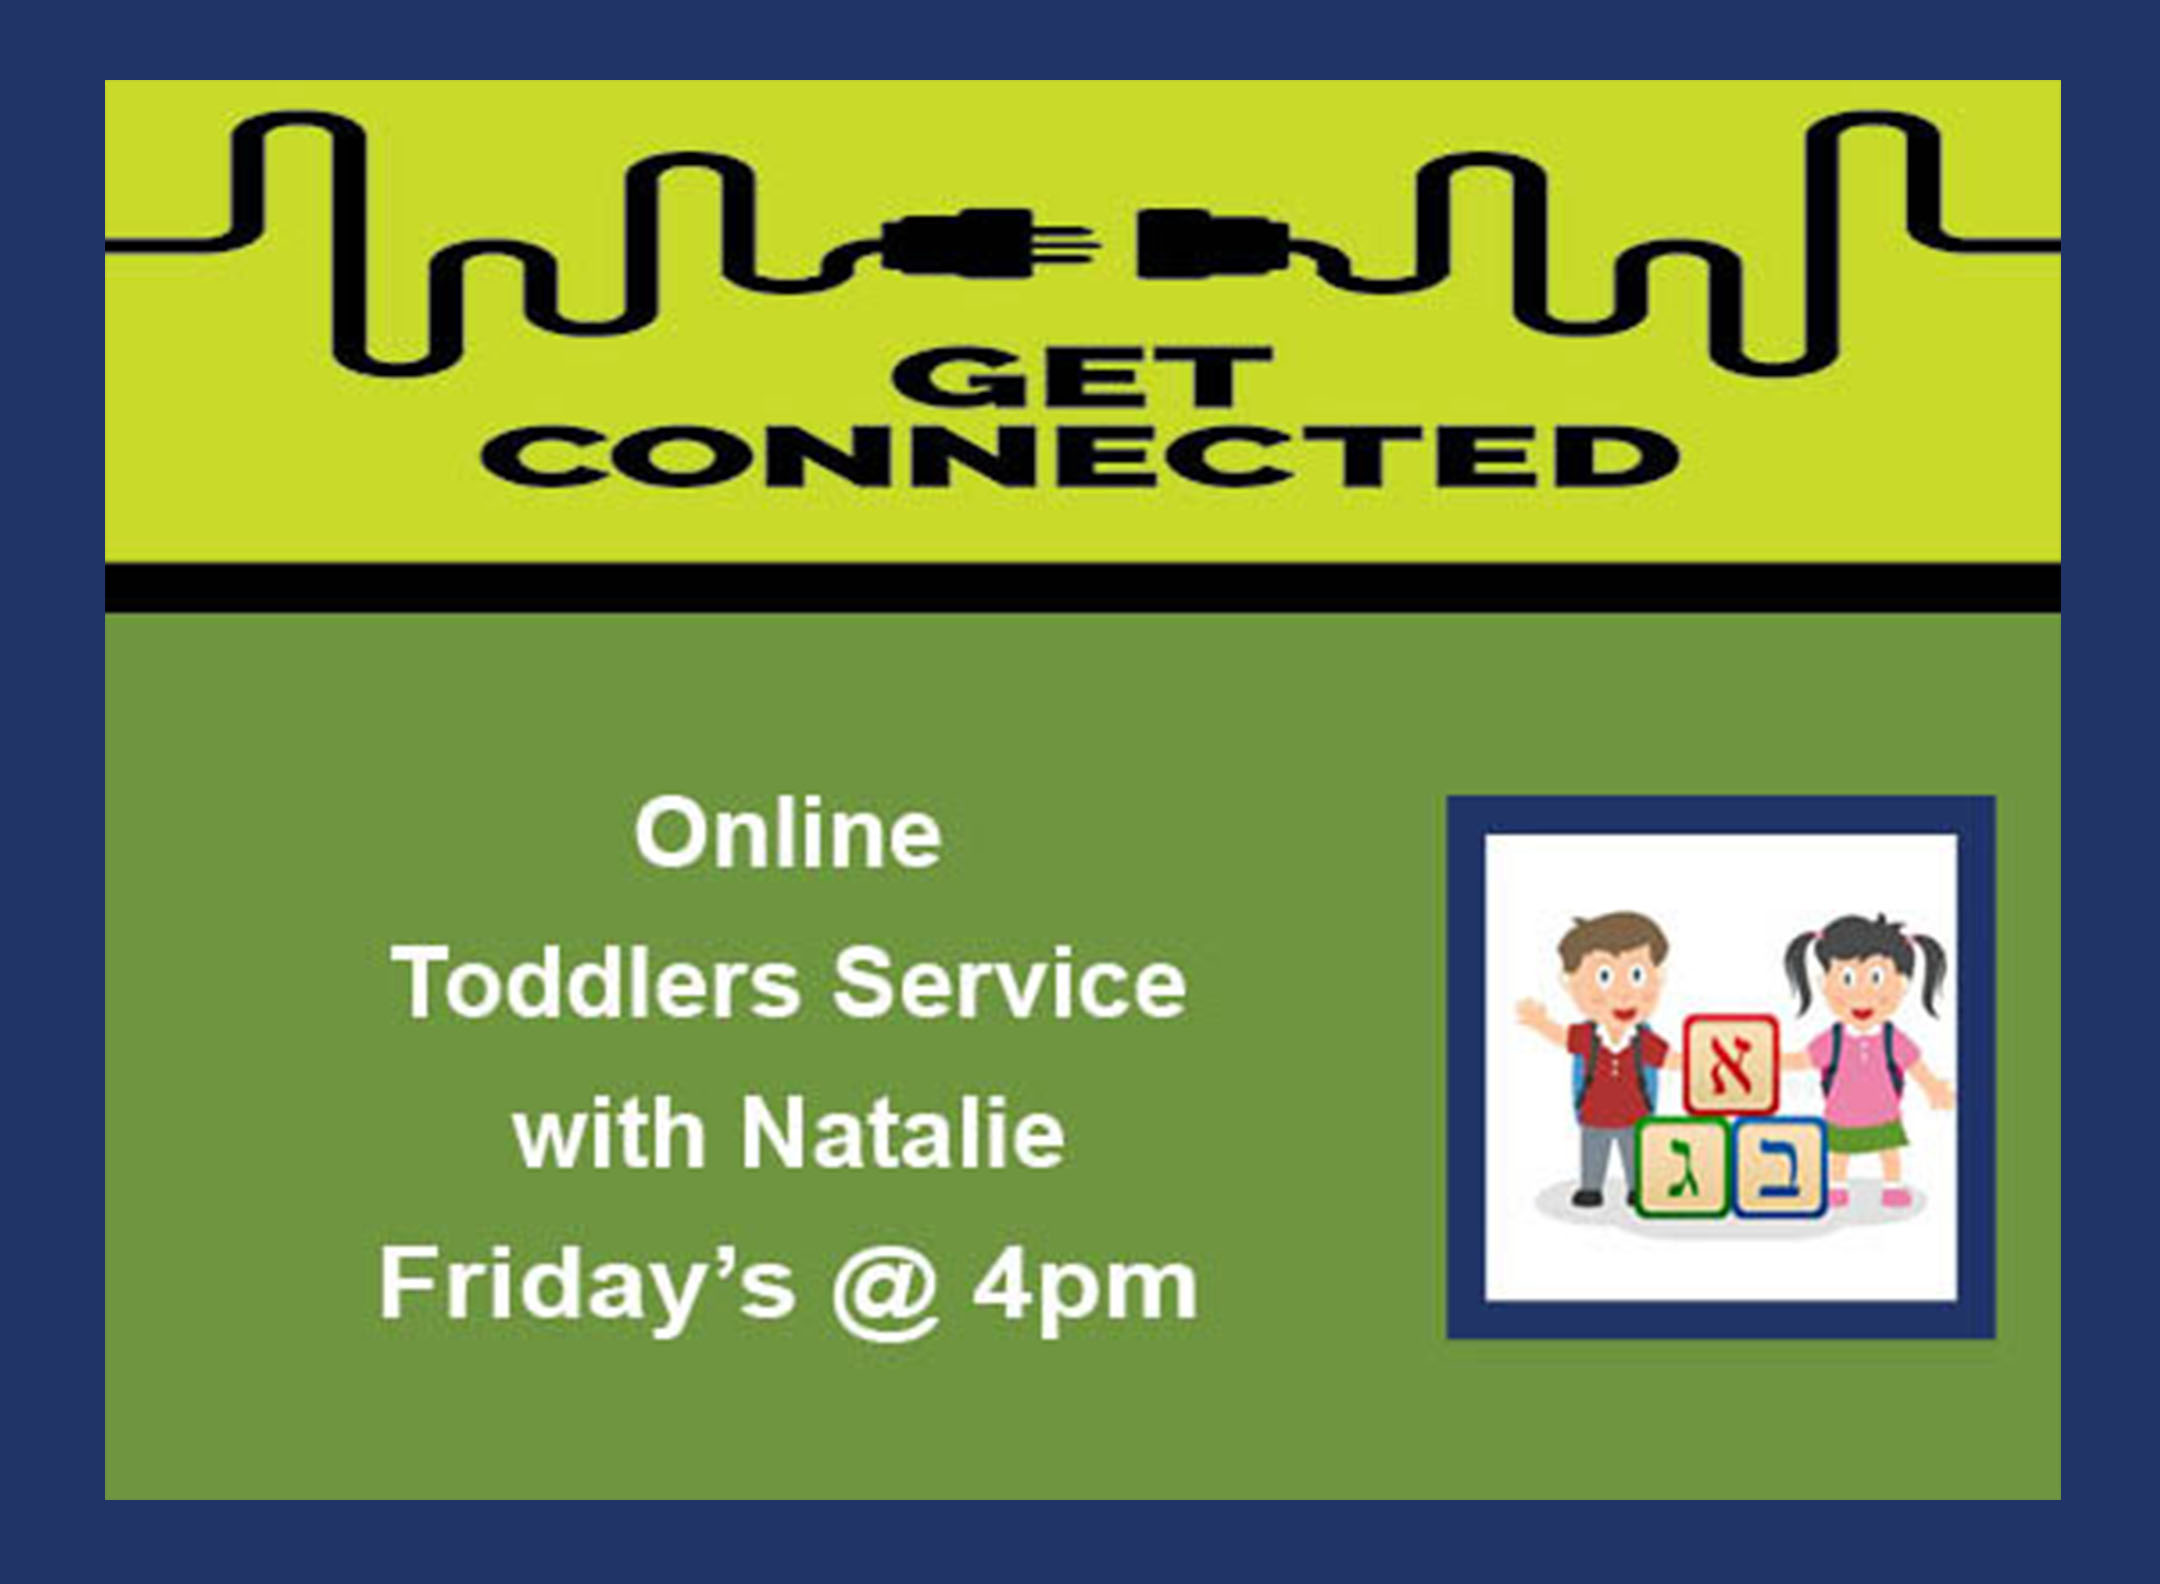 07 Toddlers Service Fridays 4pm